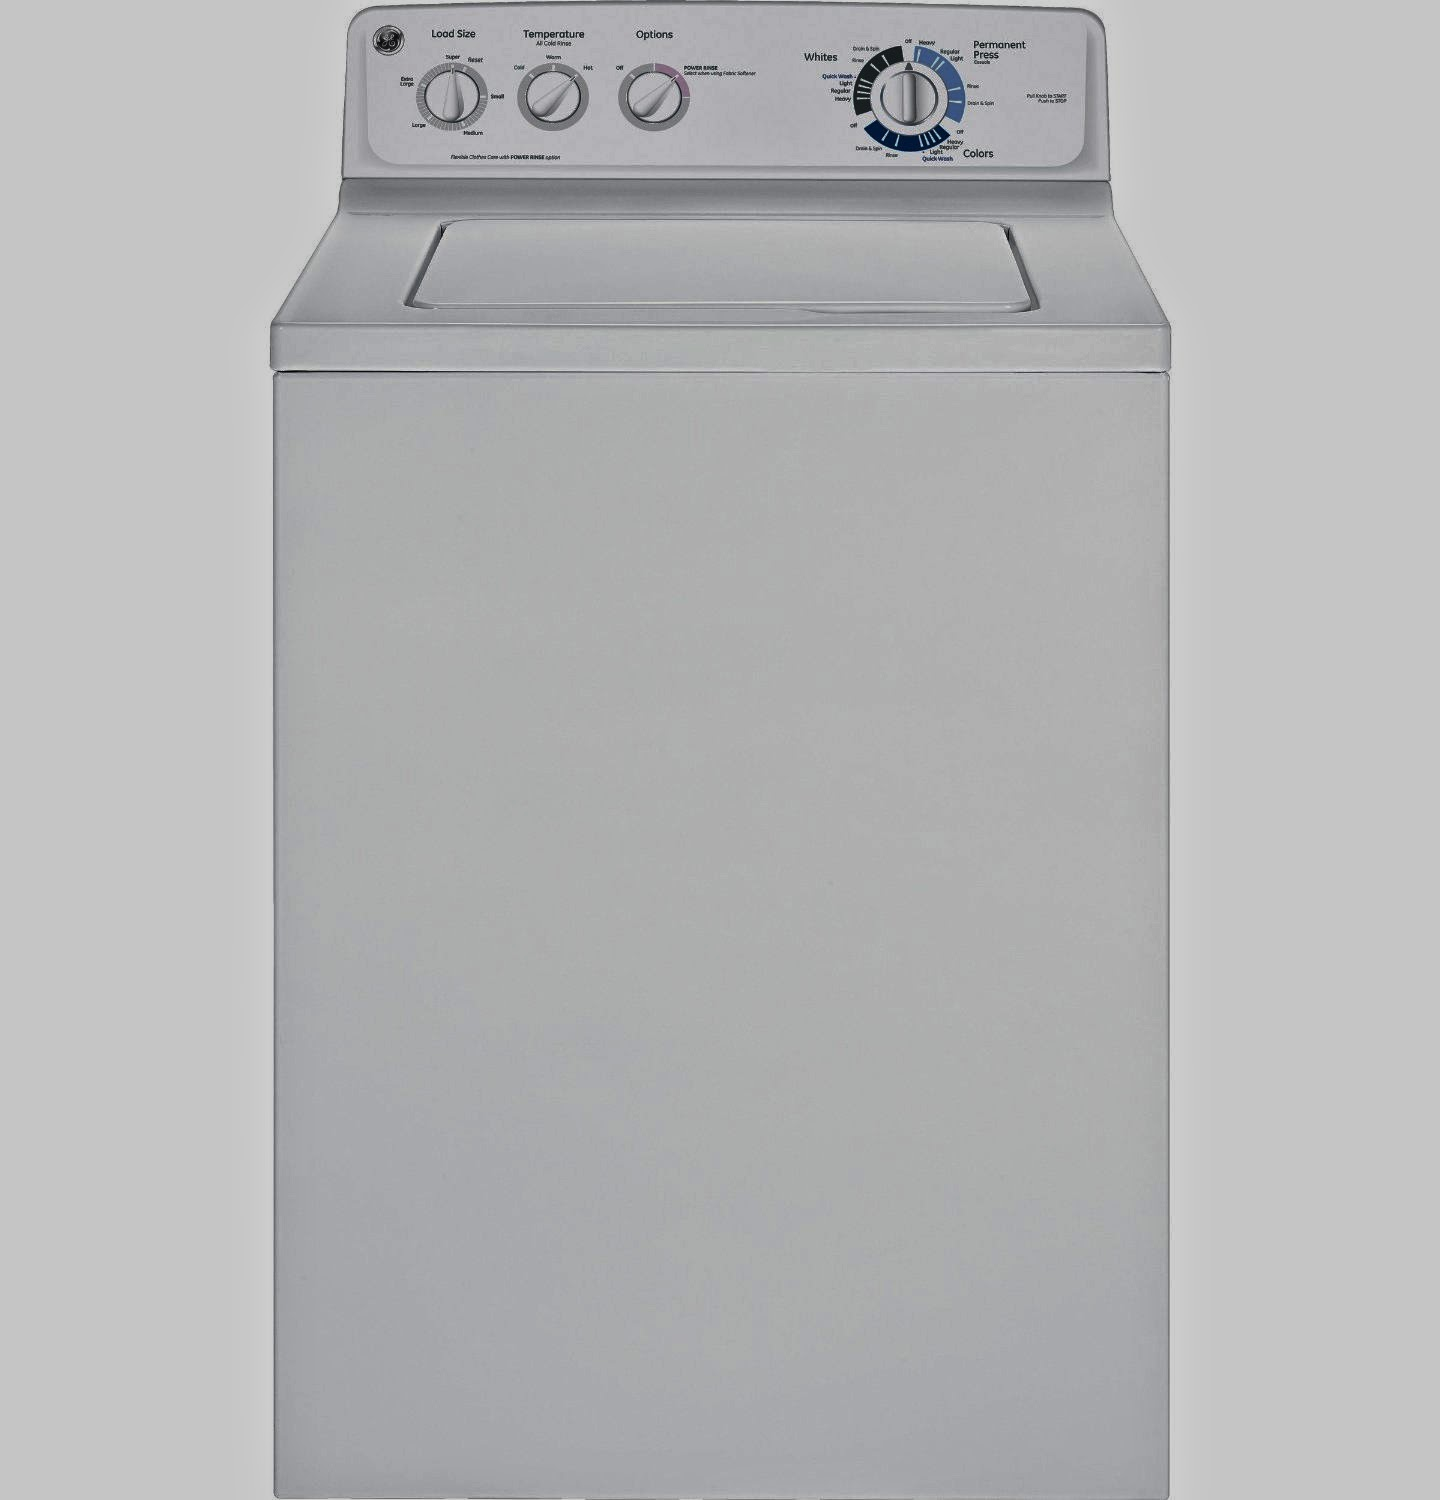 The best top load washer on the market - Ge Gtwn2800dww 3 9 Cf White Top Load Washer